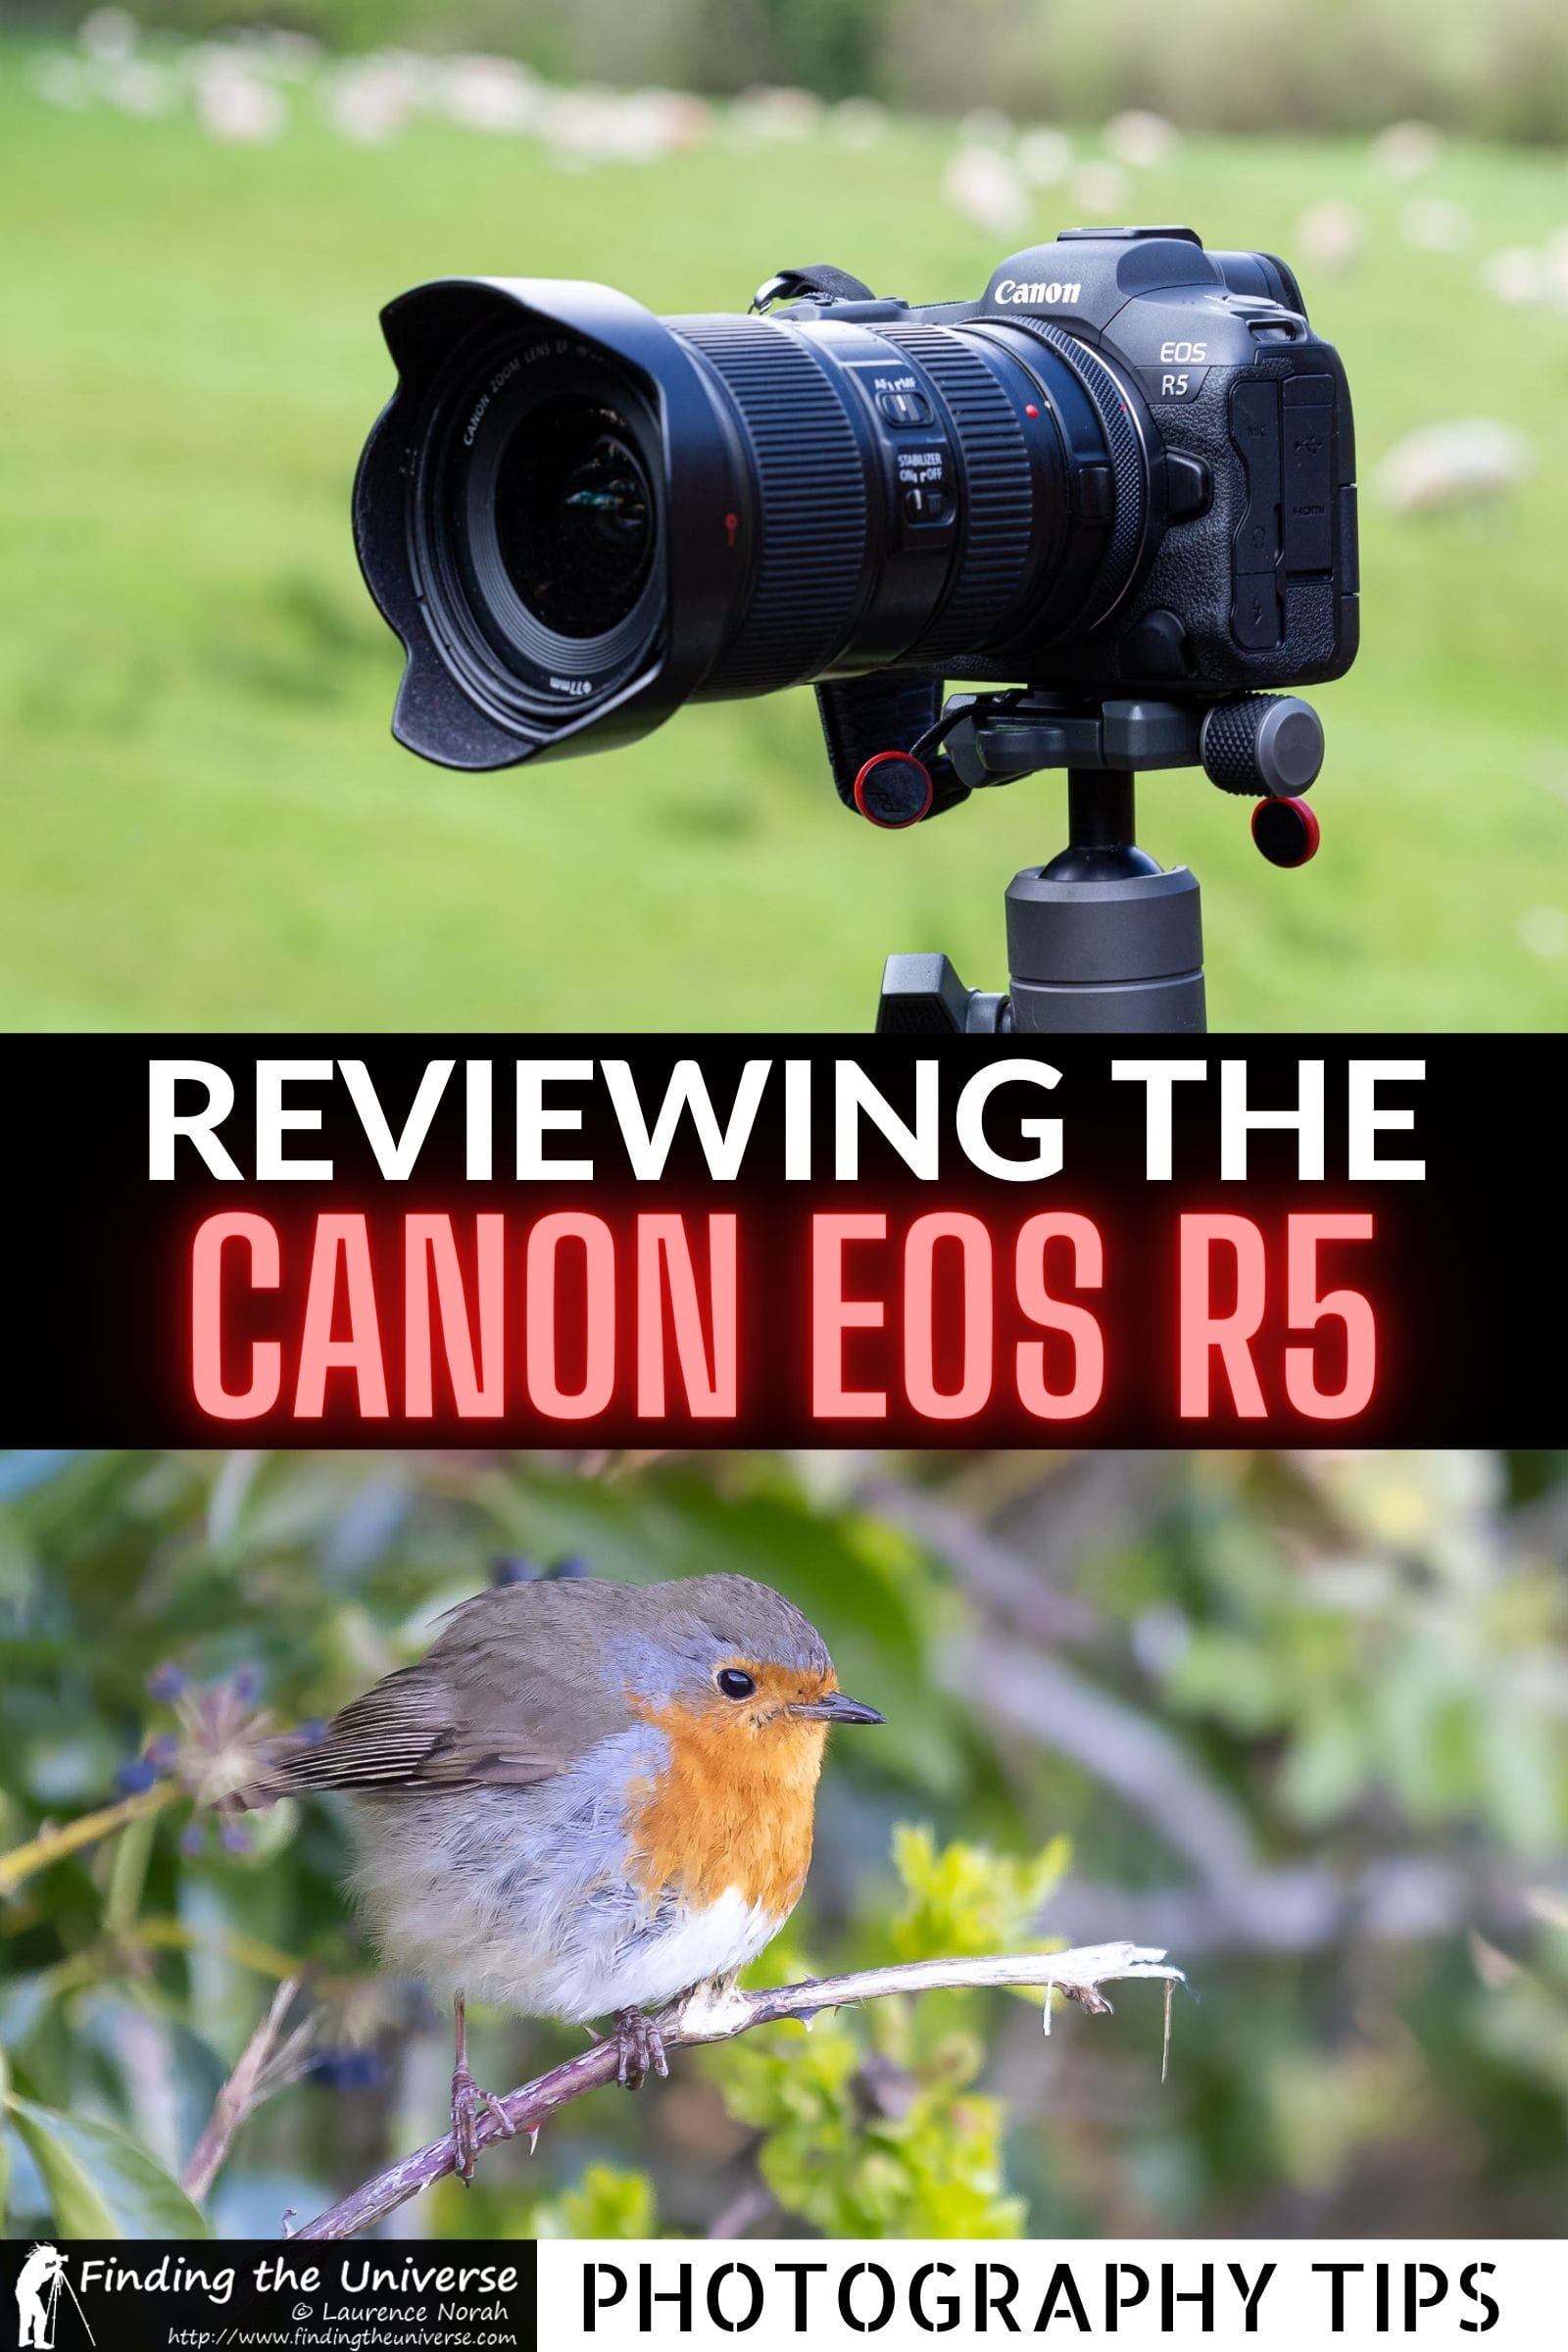 Canon EOS R5 Review. A detailed overview of all the pros and cons of this camera from a professional travel photographer.